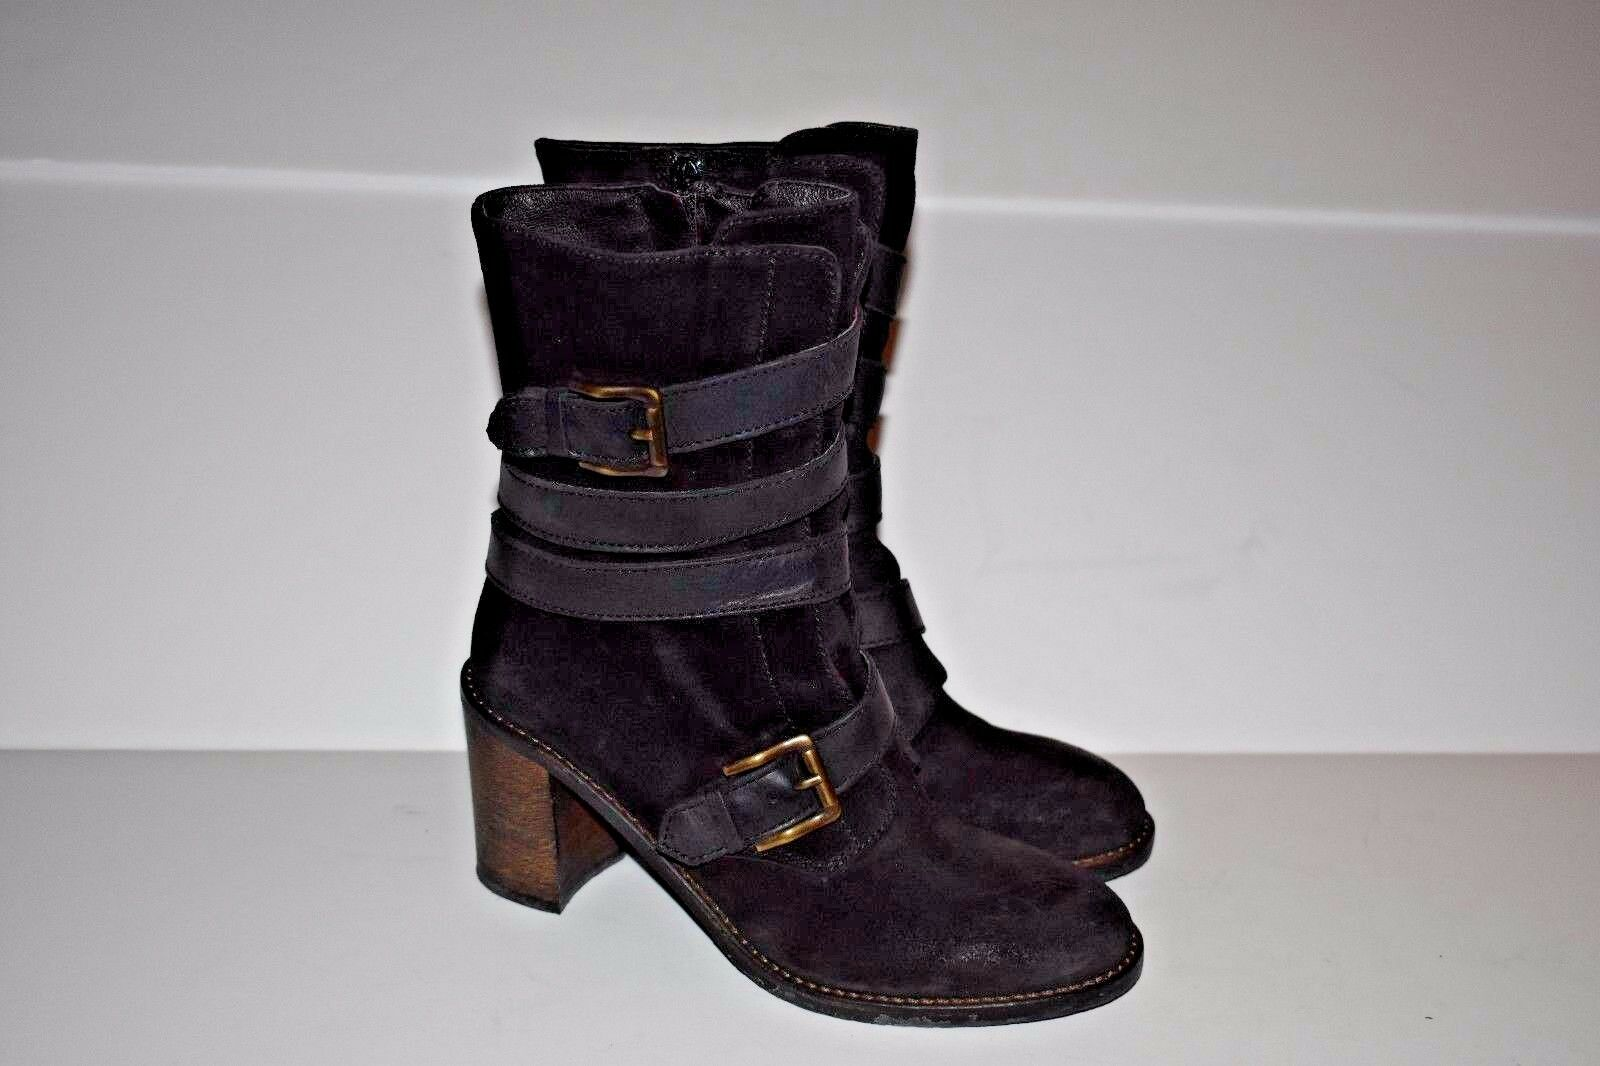 Cordani Woman's Leather Zip Up Boots Boots Boots Made in  Size 36.5 6ef6f3